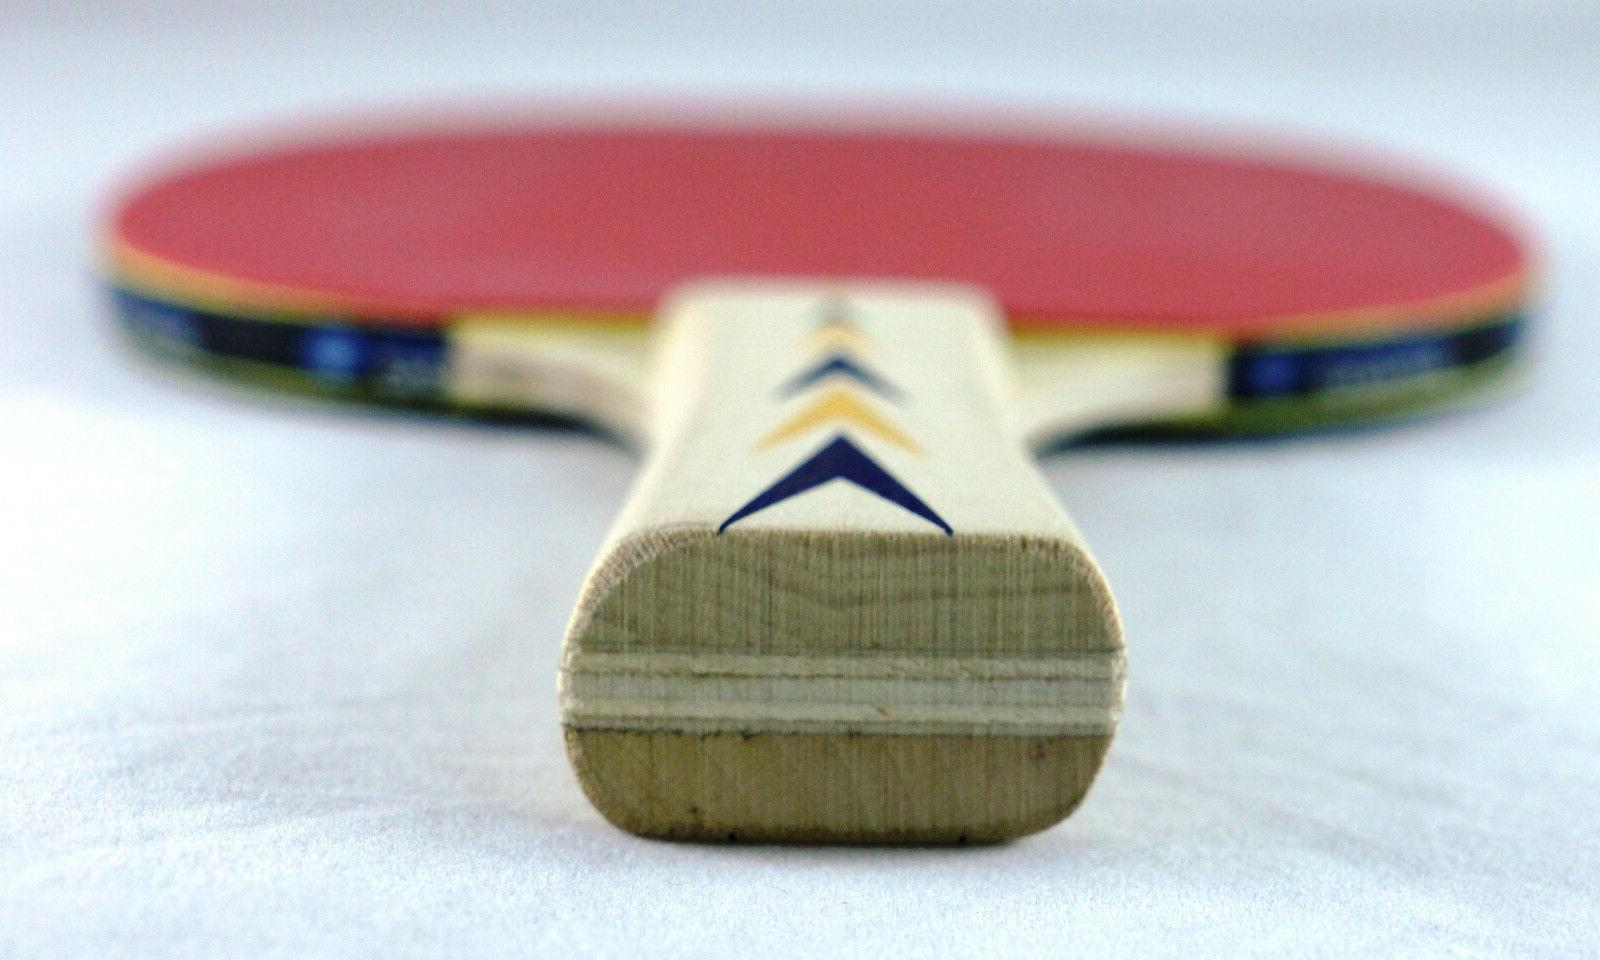 Donic 300 Tennis Brand Ping Pong Paddle Quality